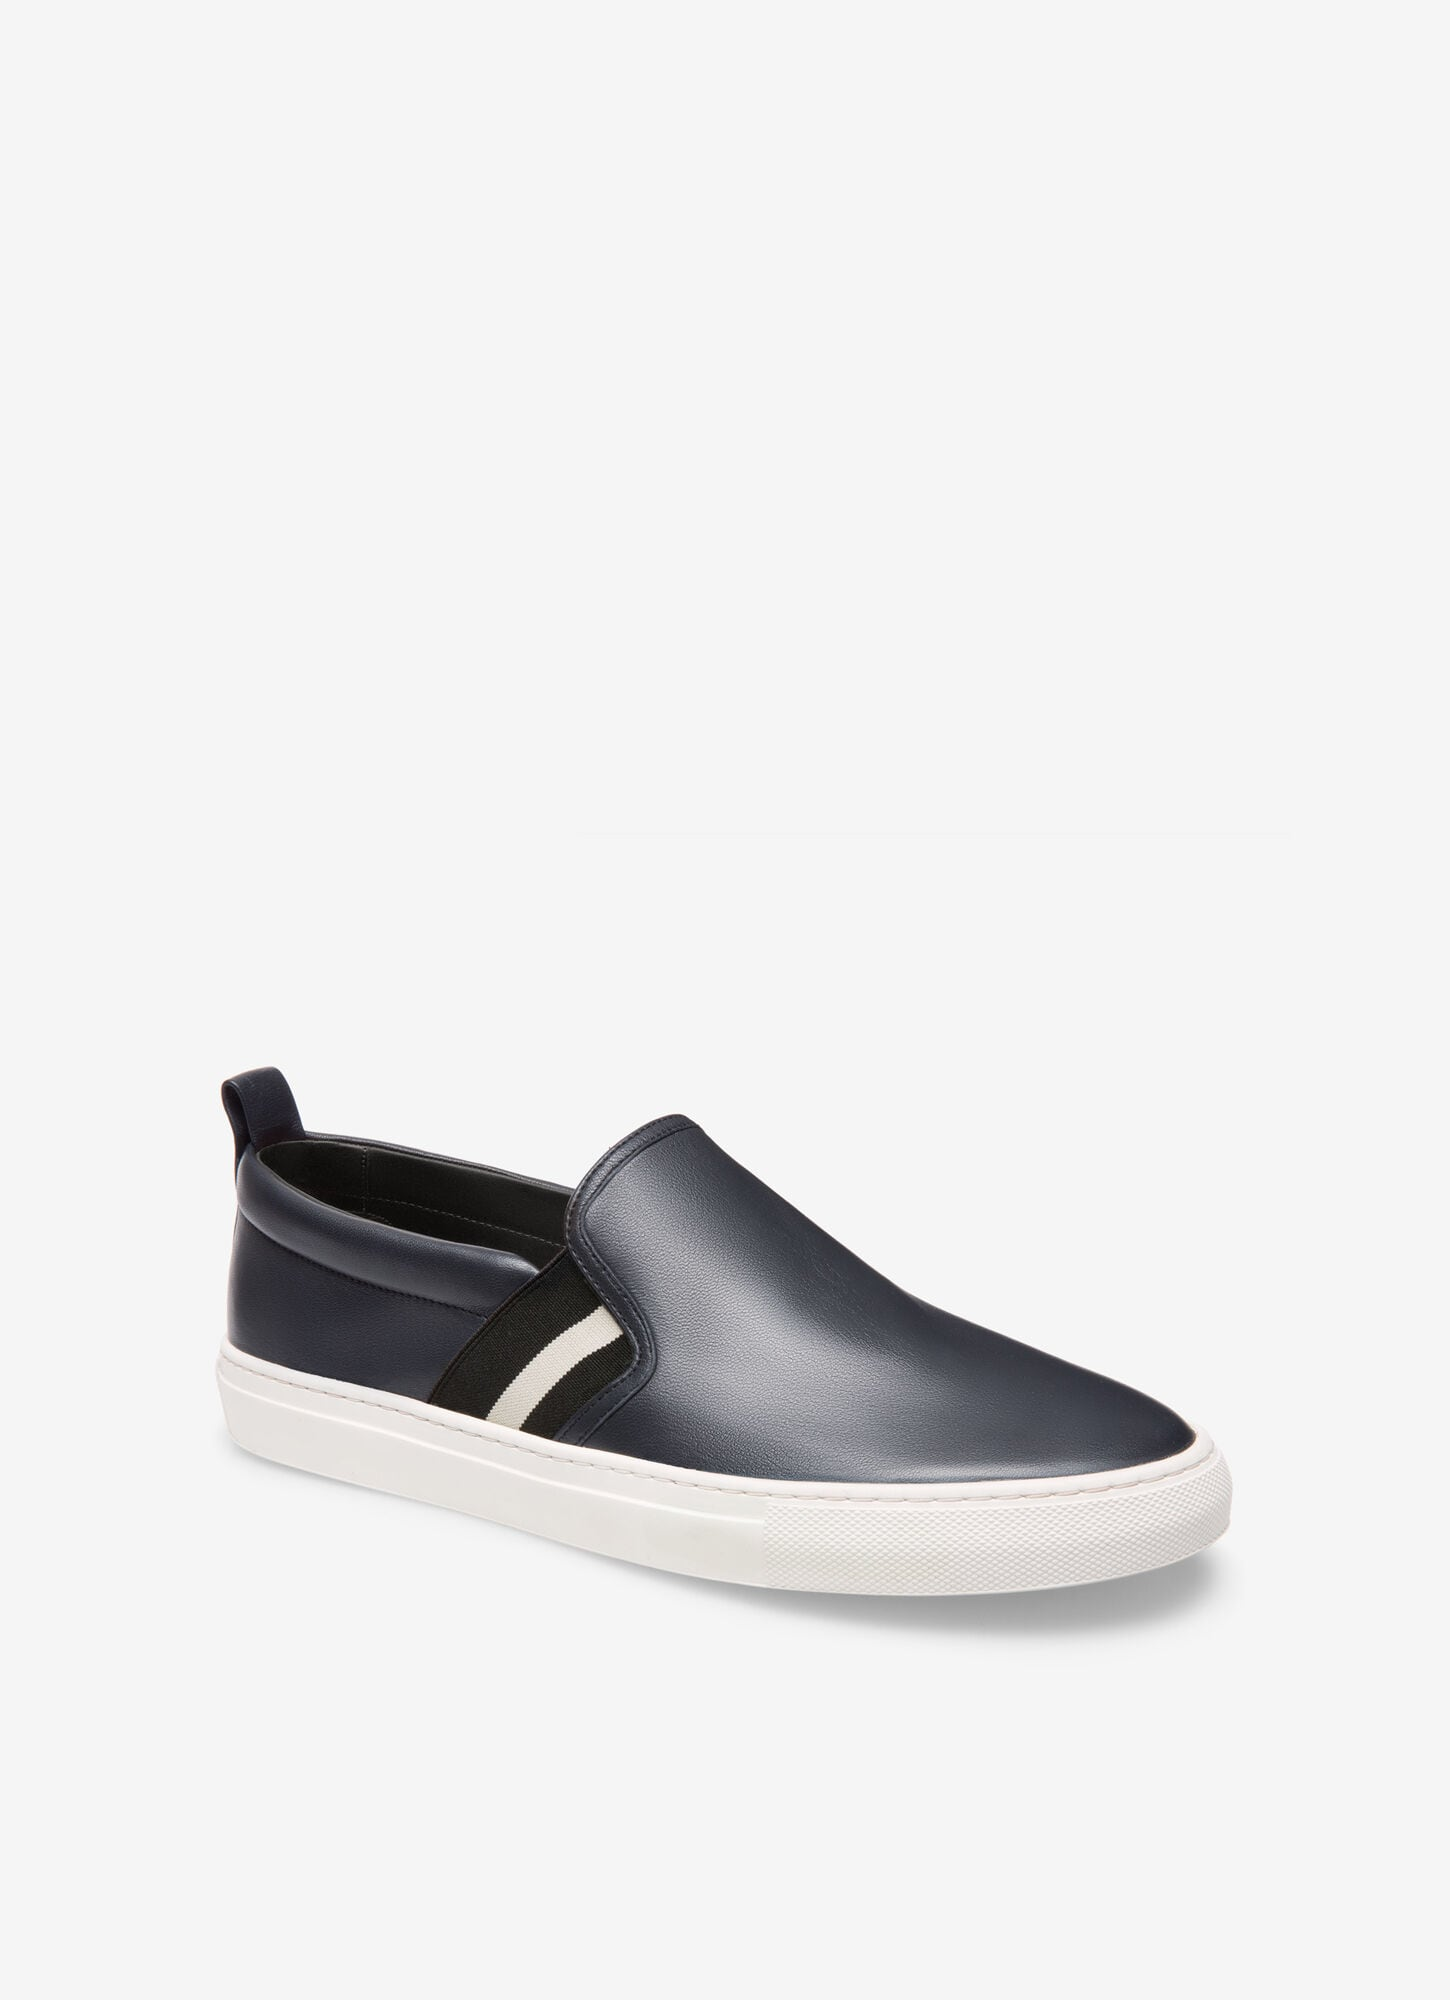 HERALD| Mens Sneakers | Navy Leather